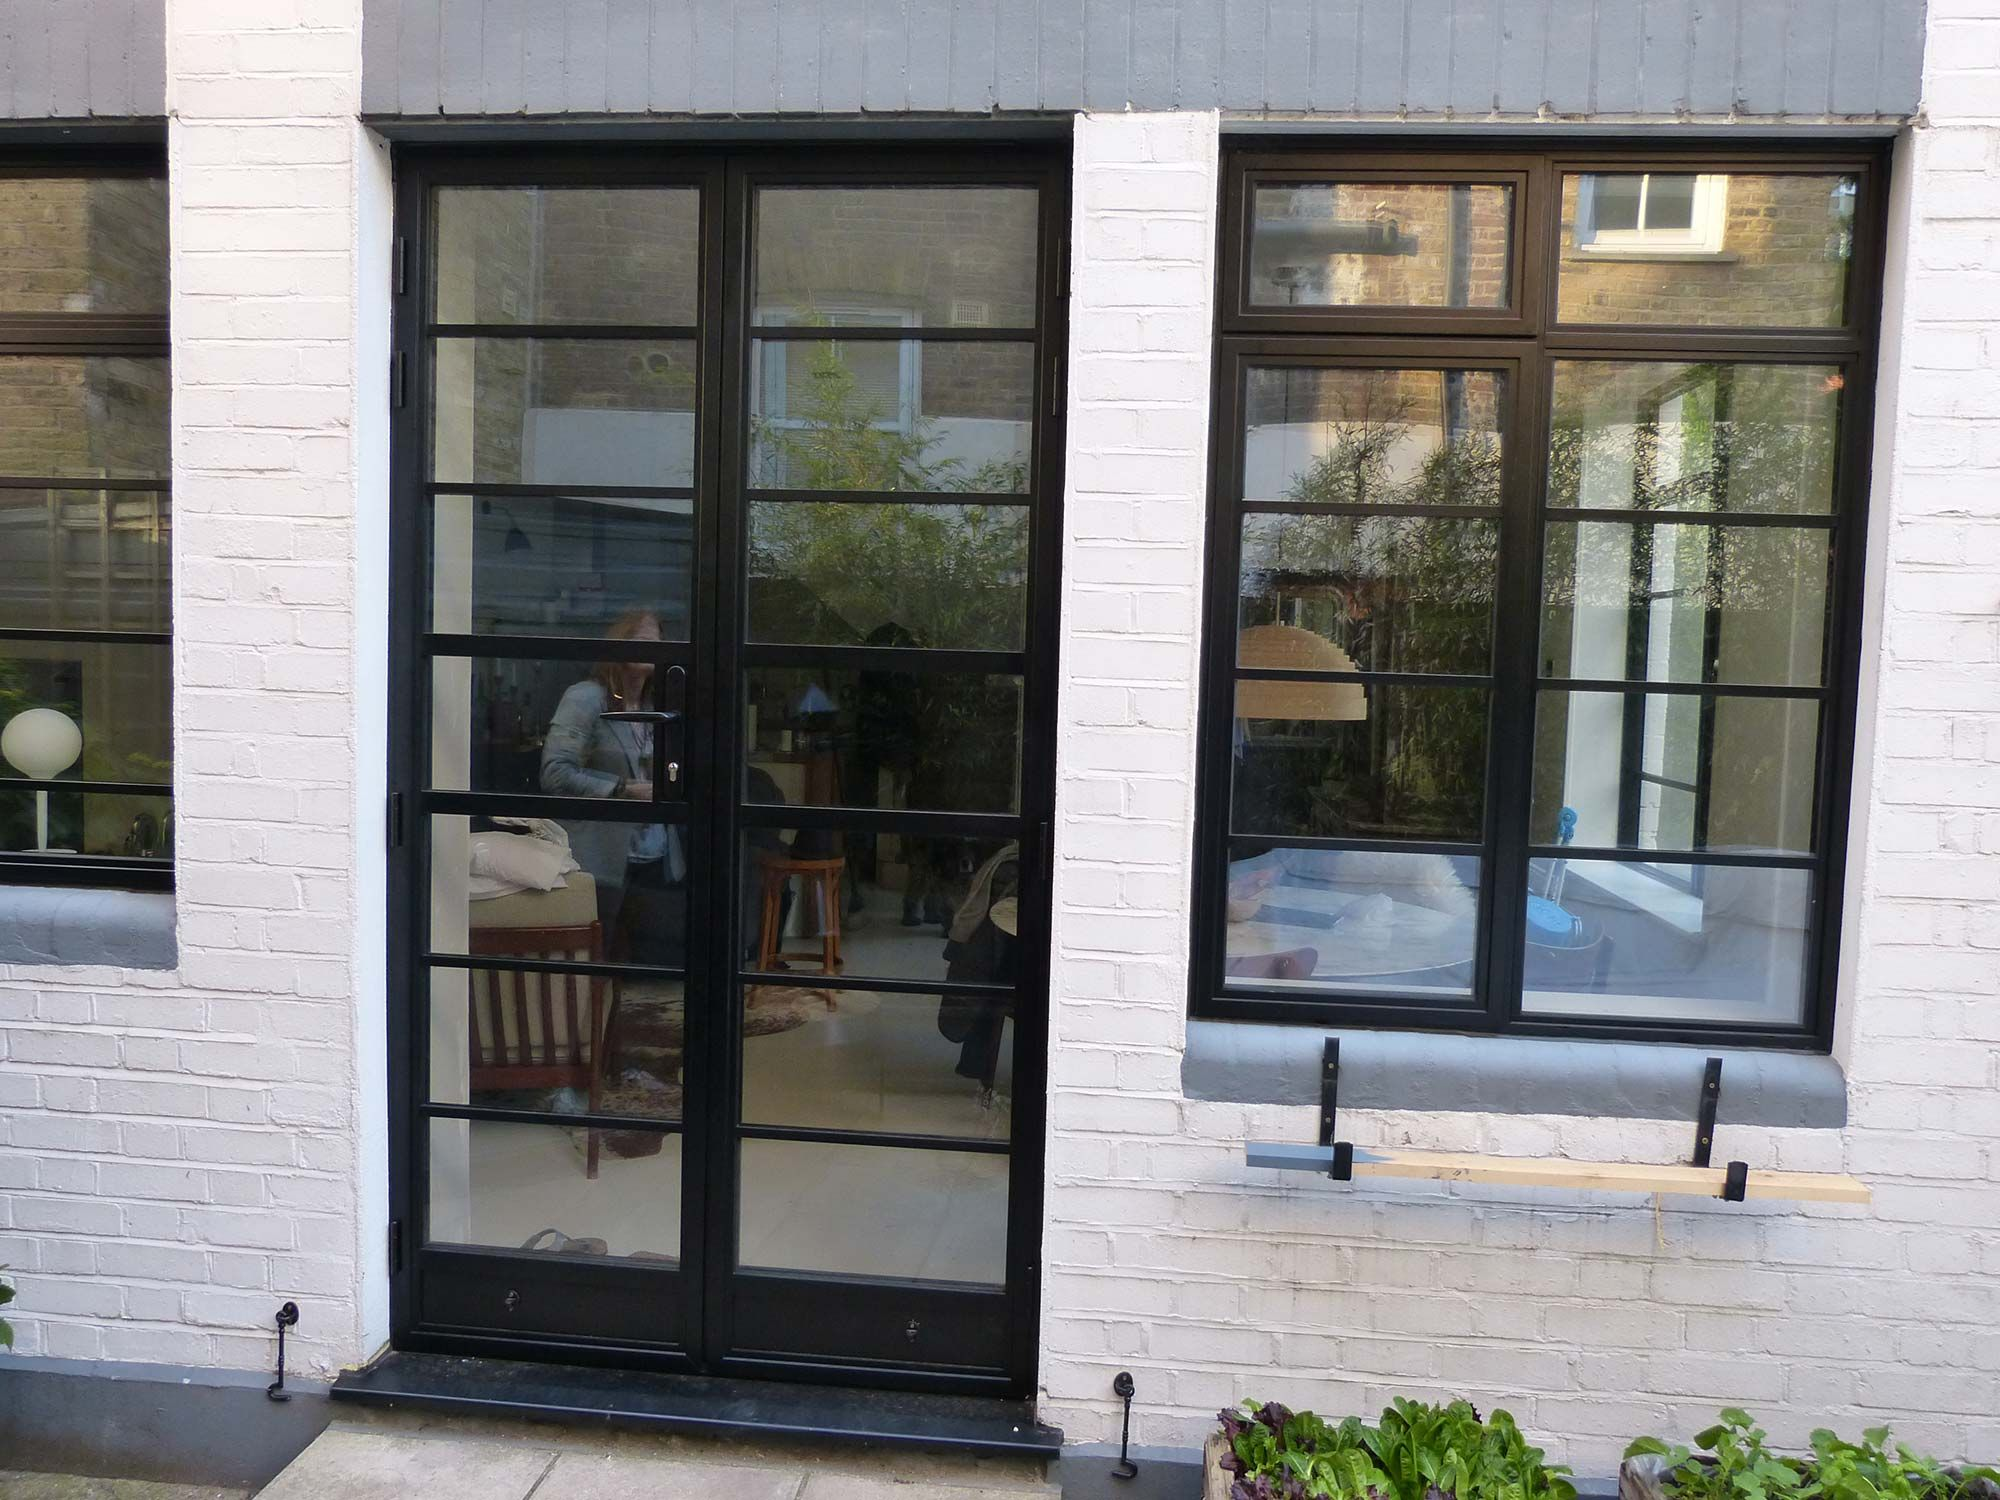 Front entry doors amp double doors in edmonton cambridge window - You Choose Windows Specialise In Aluminium Steel Replacement Doors For A Quote Or Any Other Enquiries Call Us Today On 0800 970